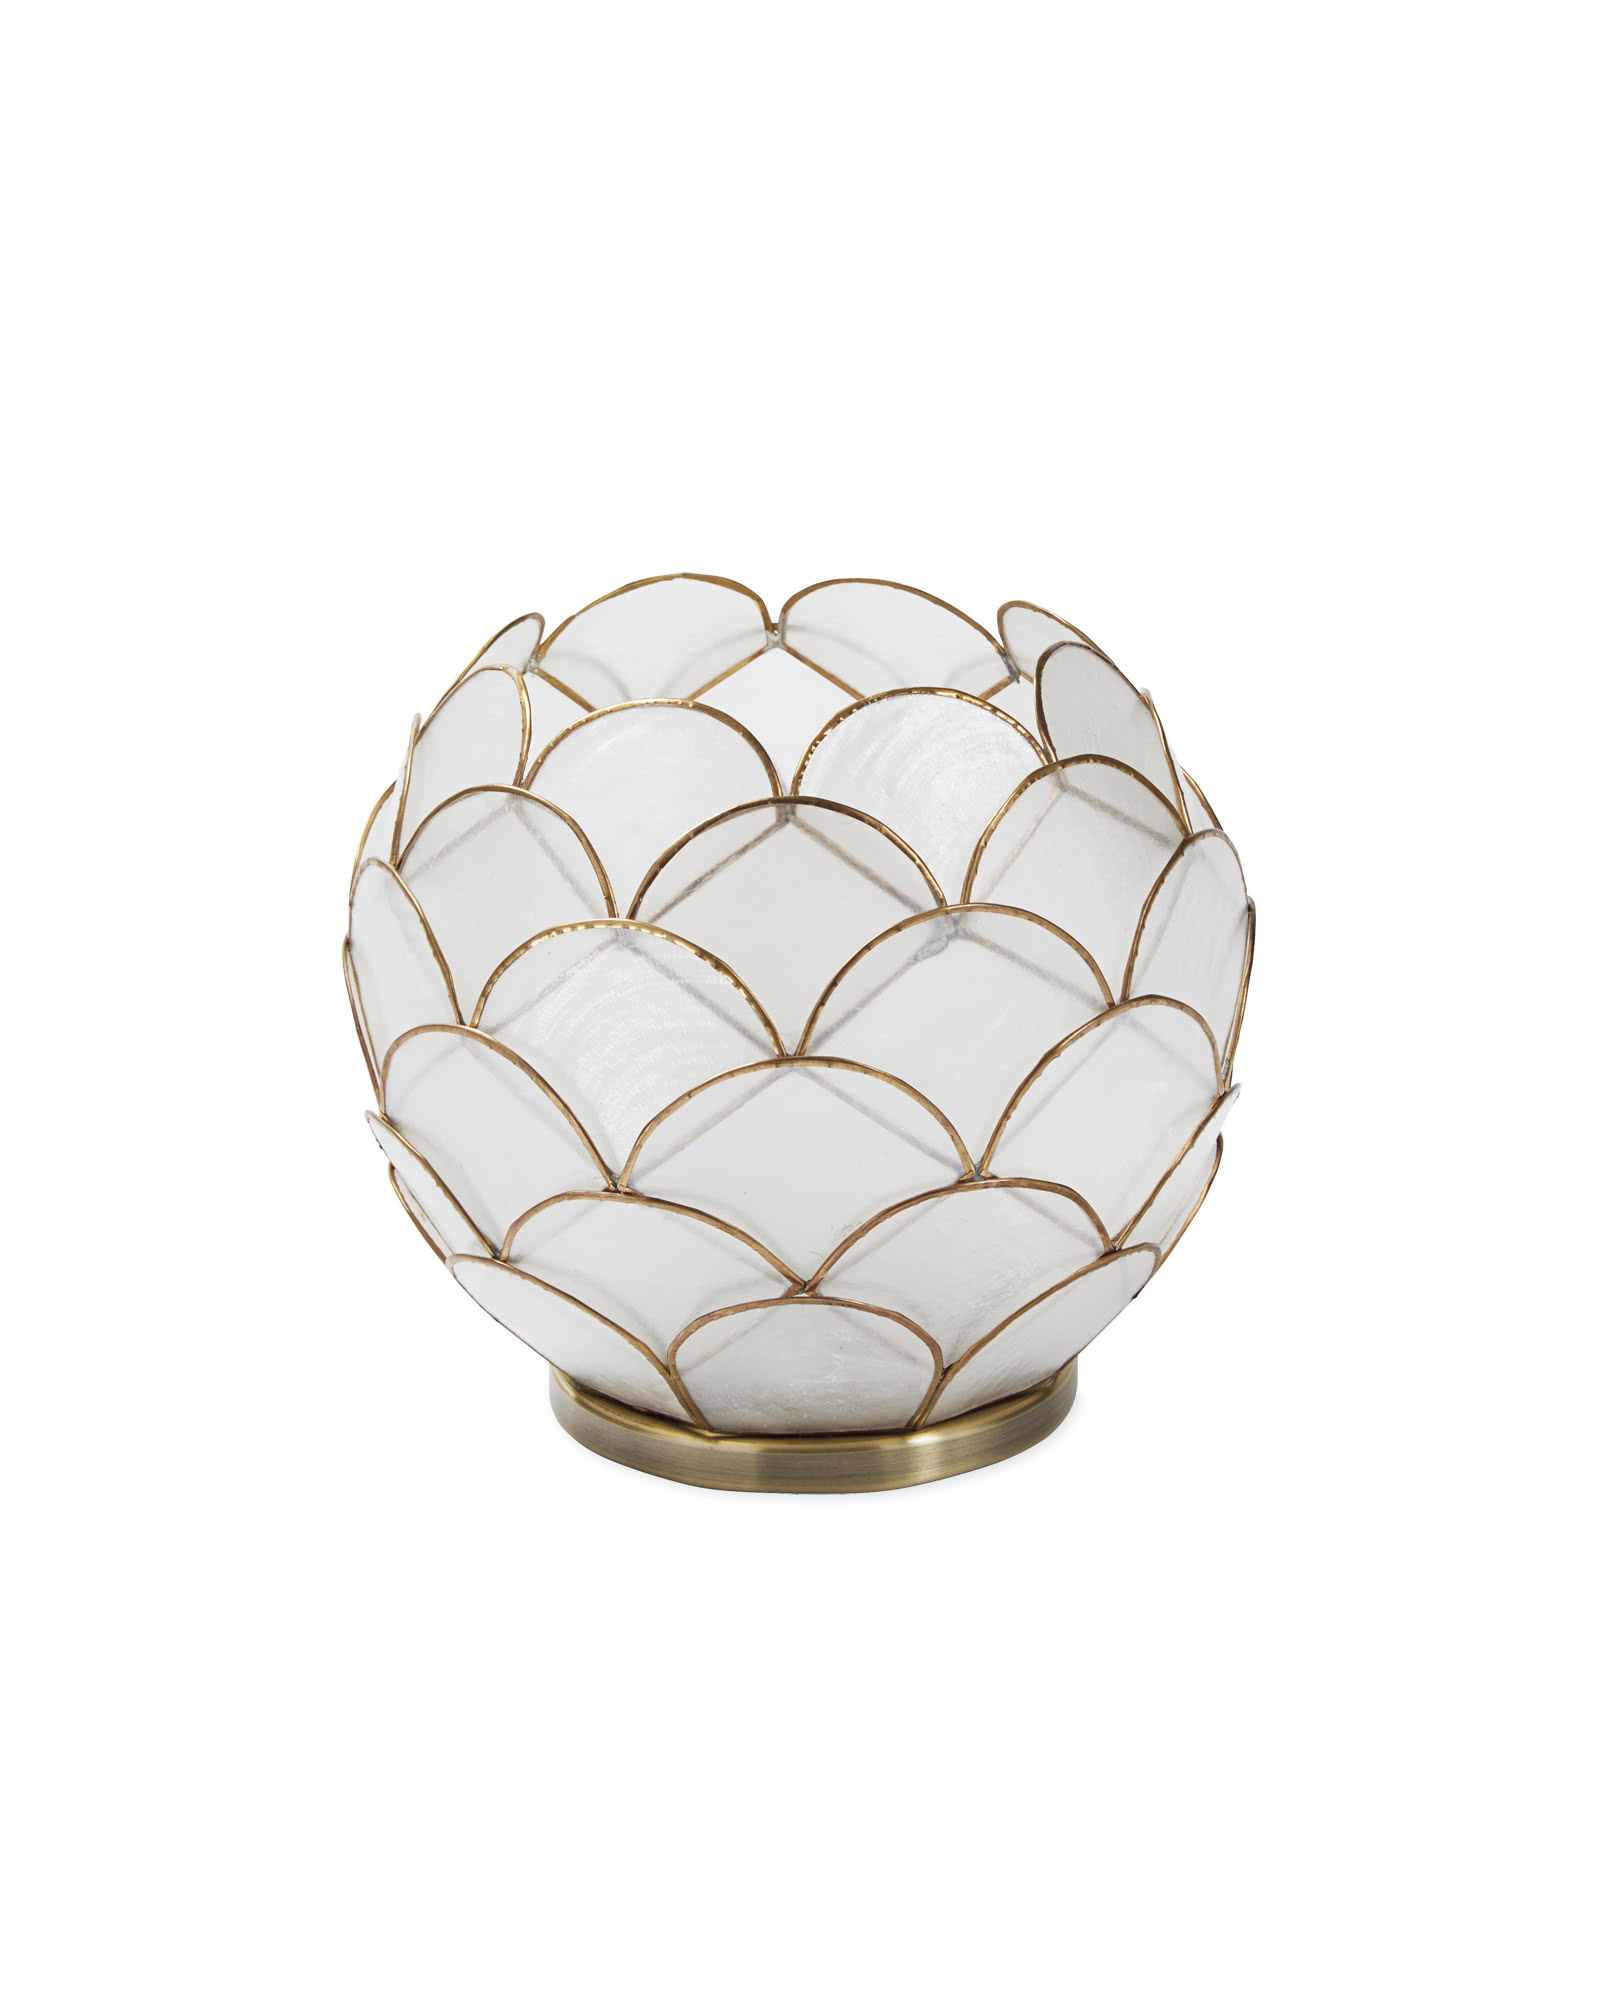 Scalloped Capiz Hurricane - Round,